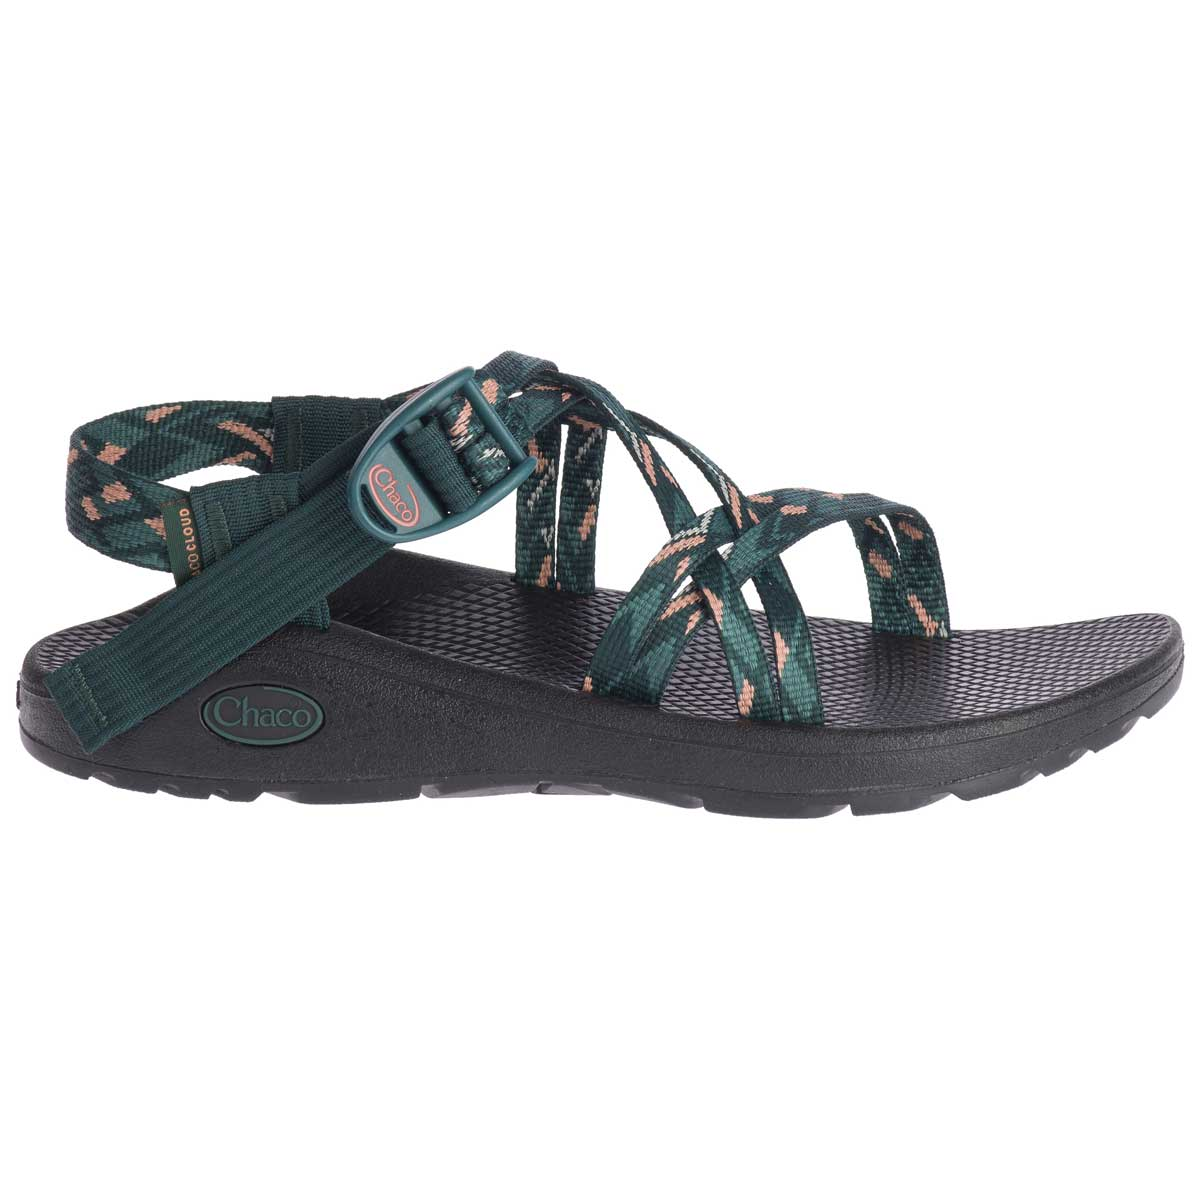 Chaco Z/Cloud X Women's Sandal in Warren Pine